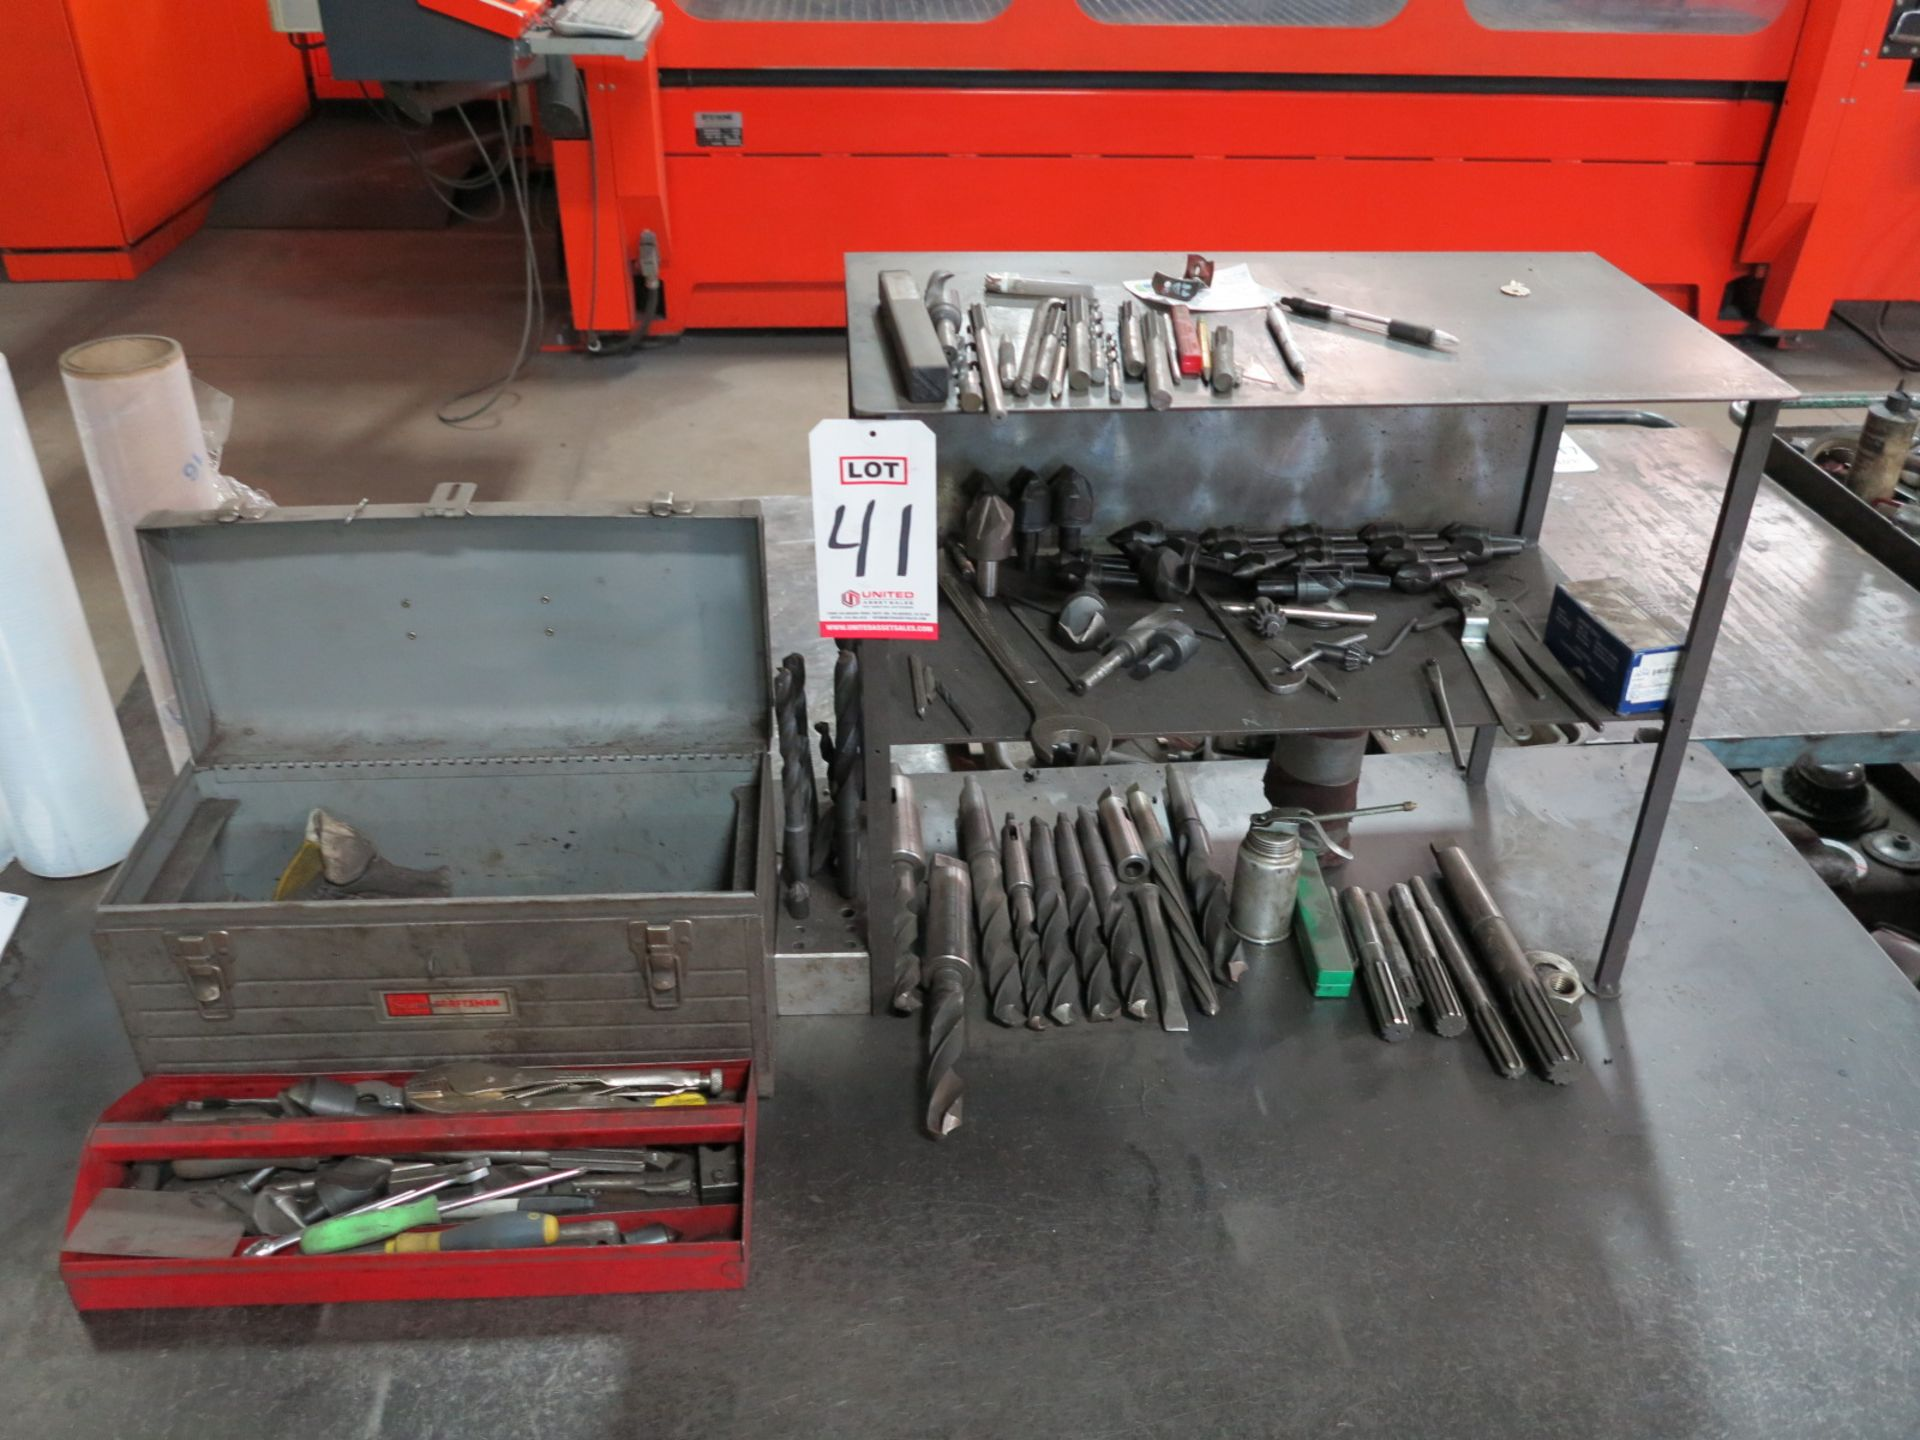 Lot 41 - LOT - MORRIS TAPER TOOLING: COUNTERSINKS, DRILLS, REAMERS, MISC HAND TOOLS IN (2) TOOL BOXES, ETC.